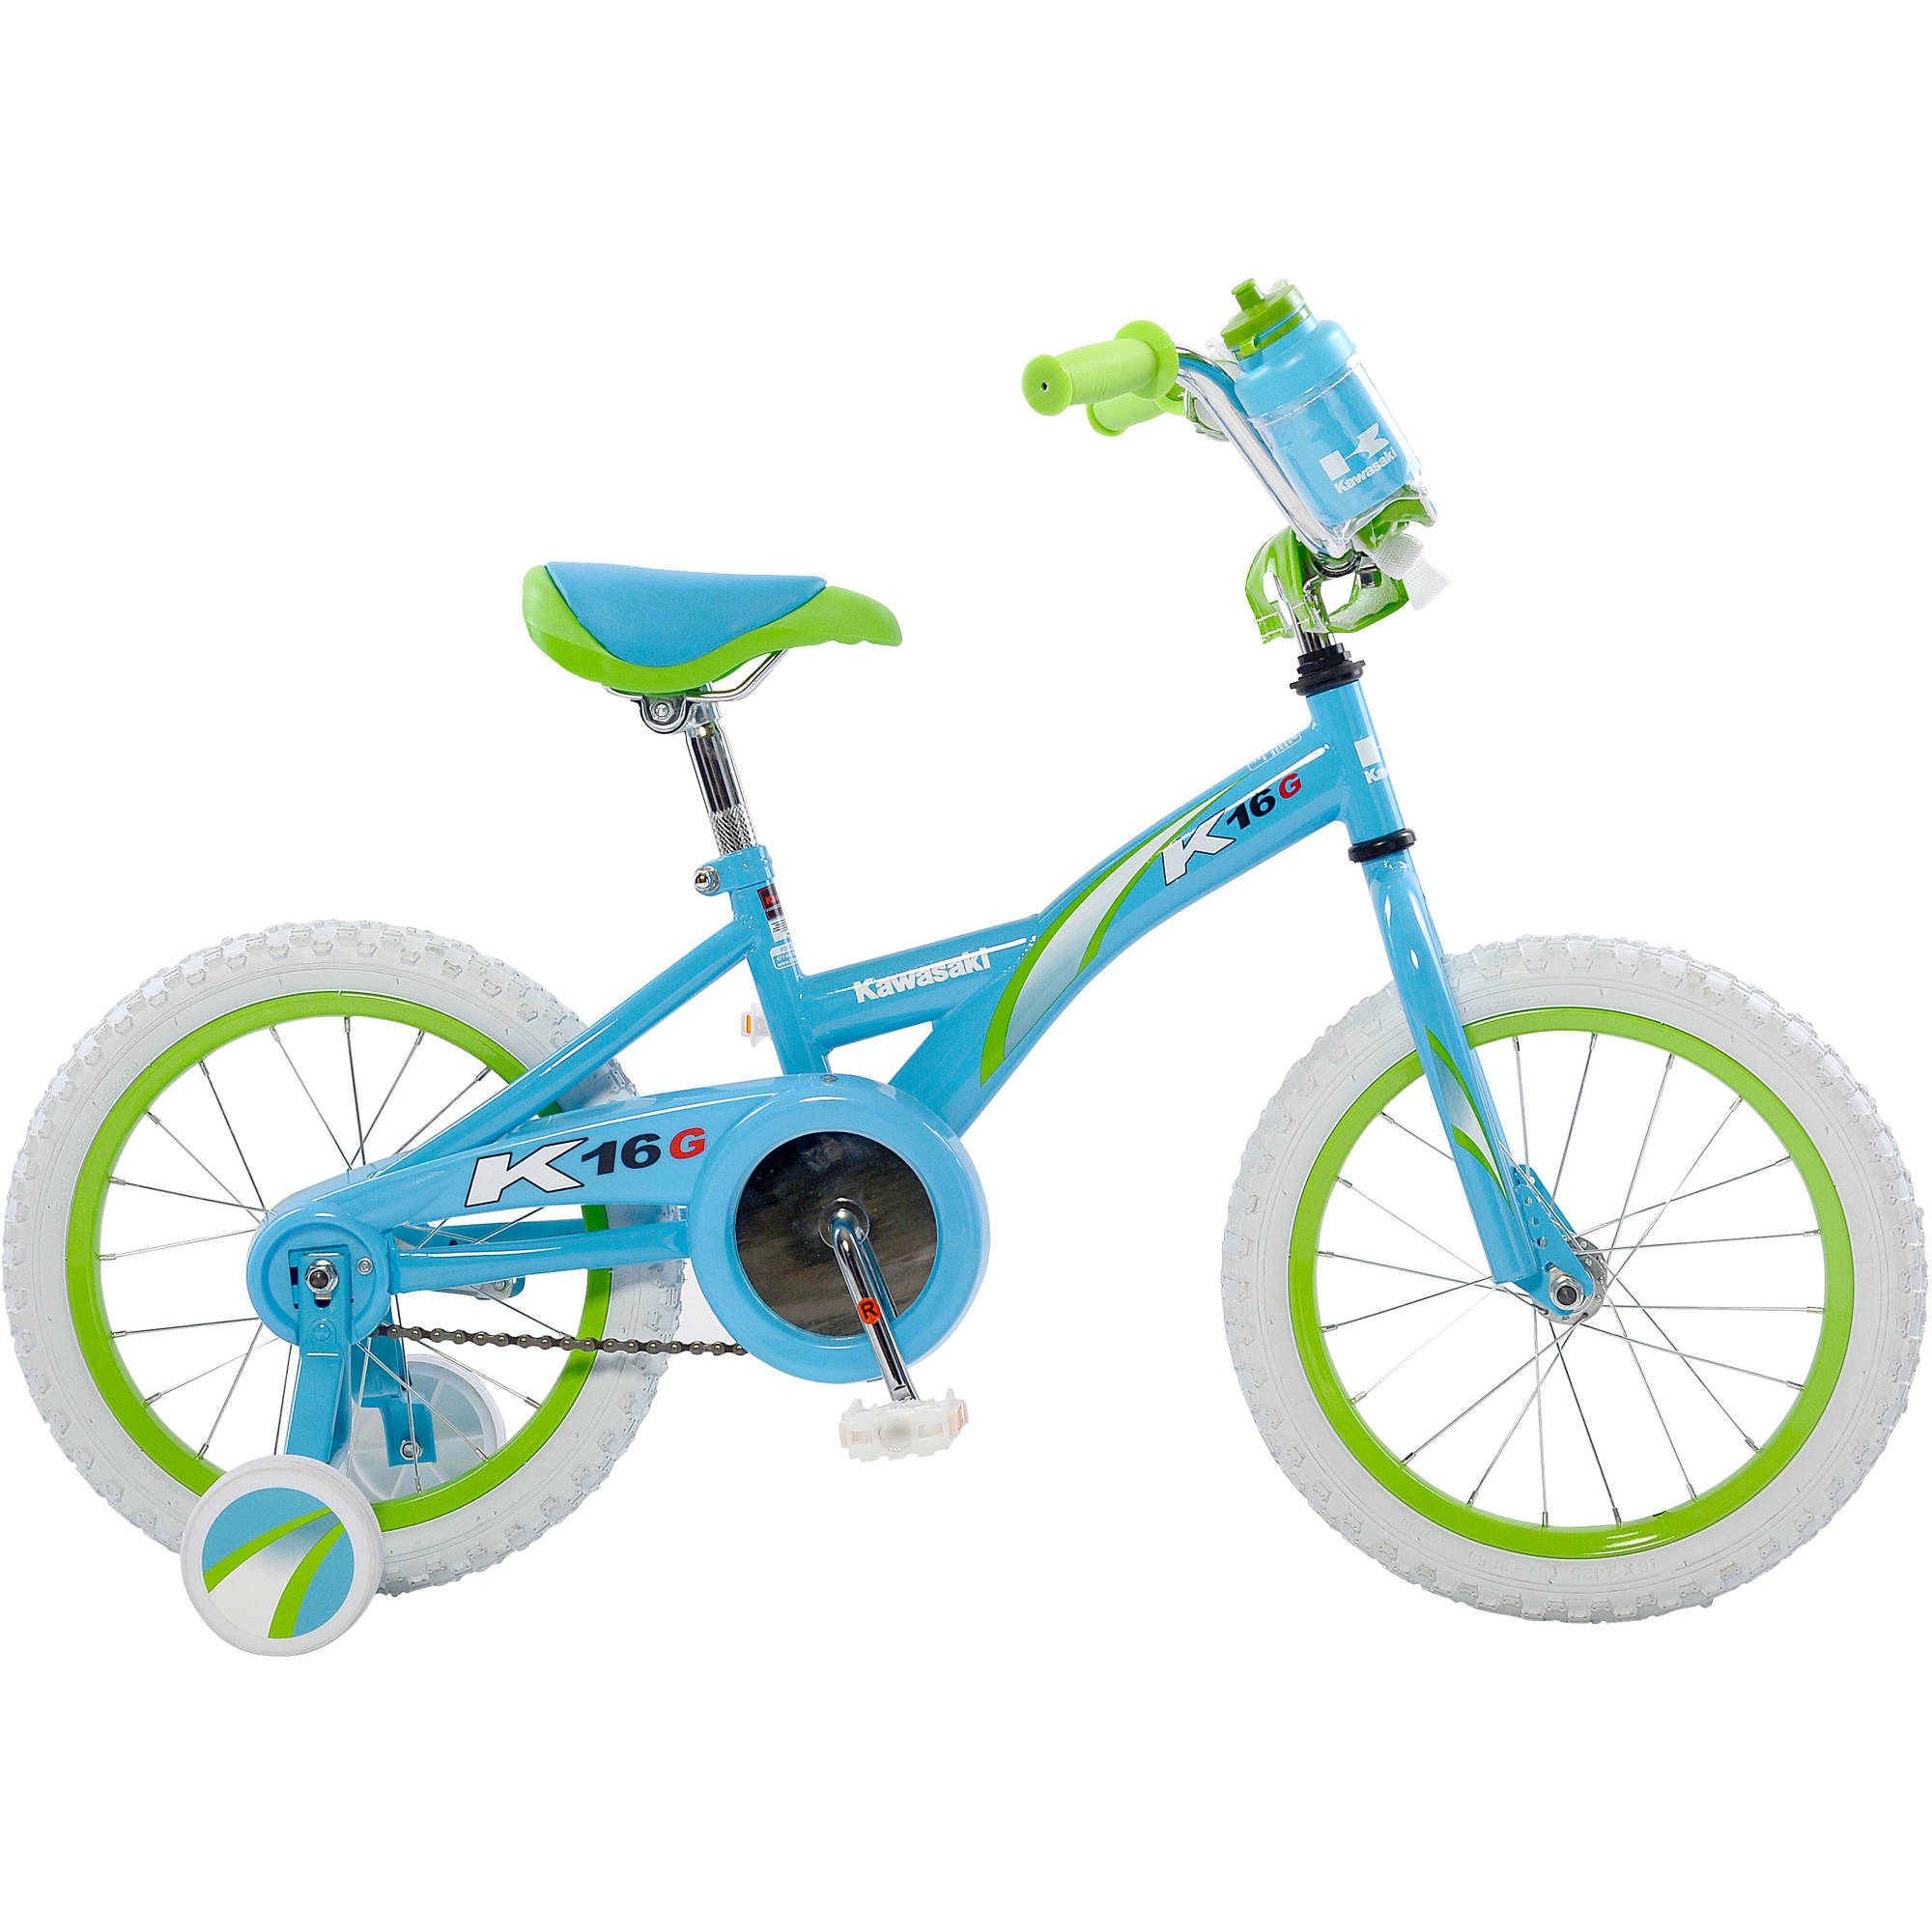 "Kawasaki 16"" Girls' Bike"